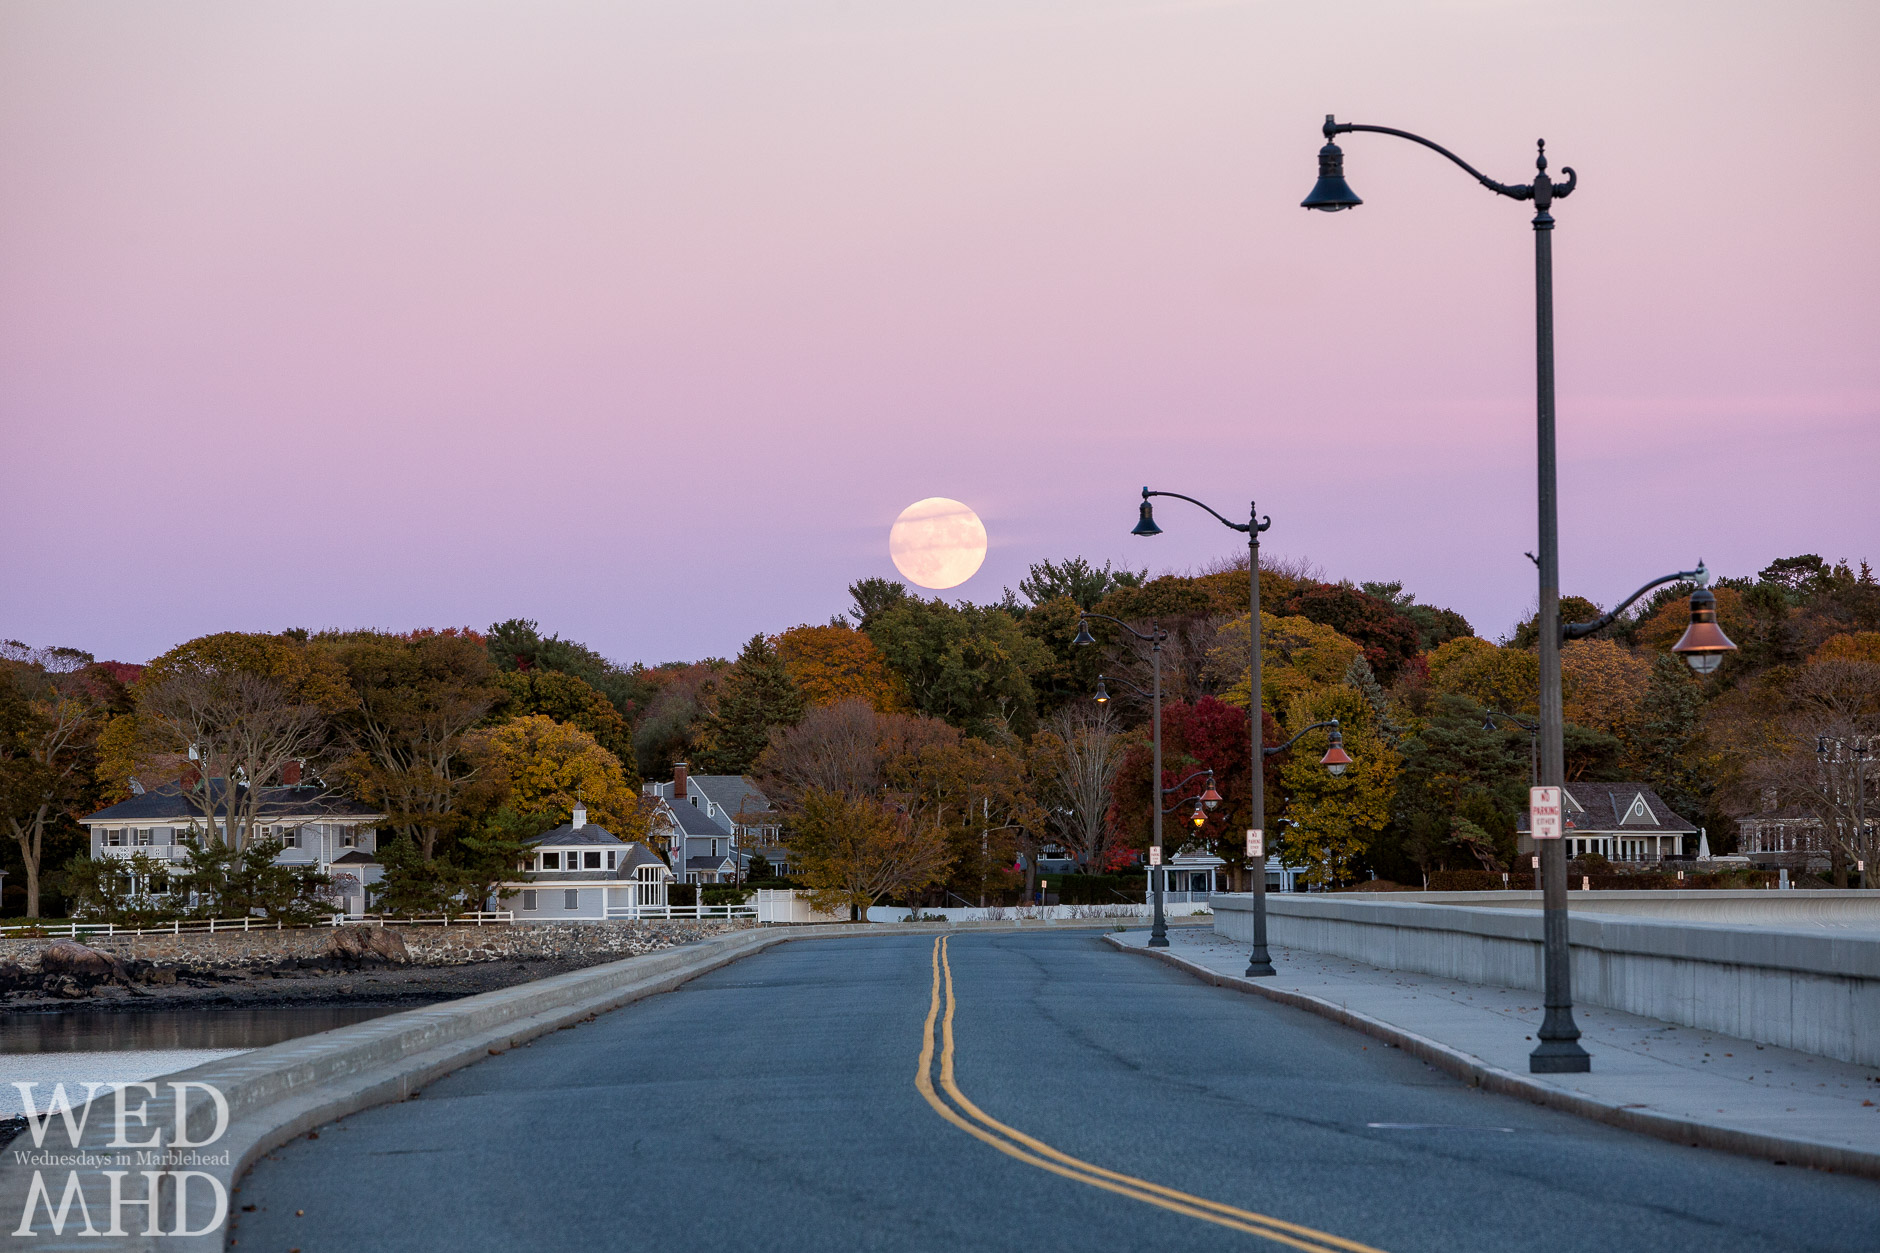 The full Hunter's moon rises over the causeway in Marblehead amidst peak foliage on the Neck